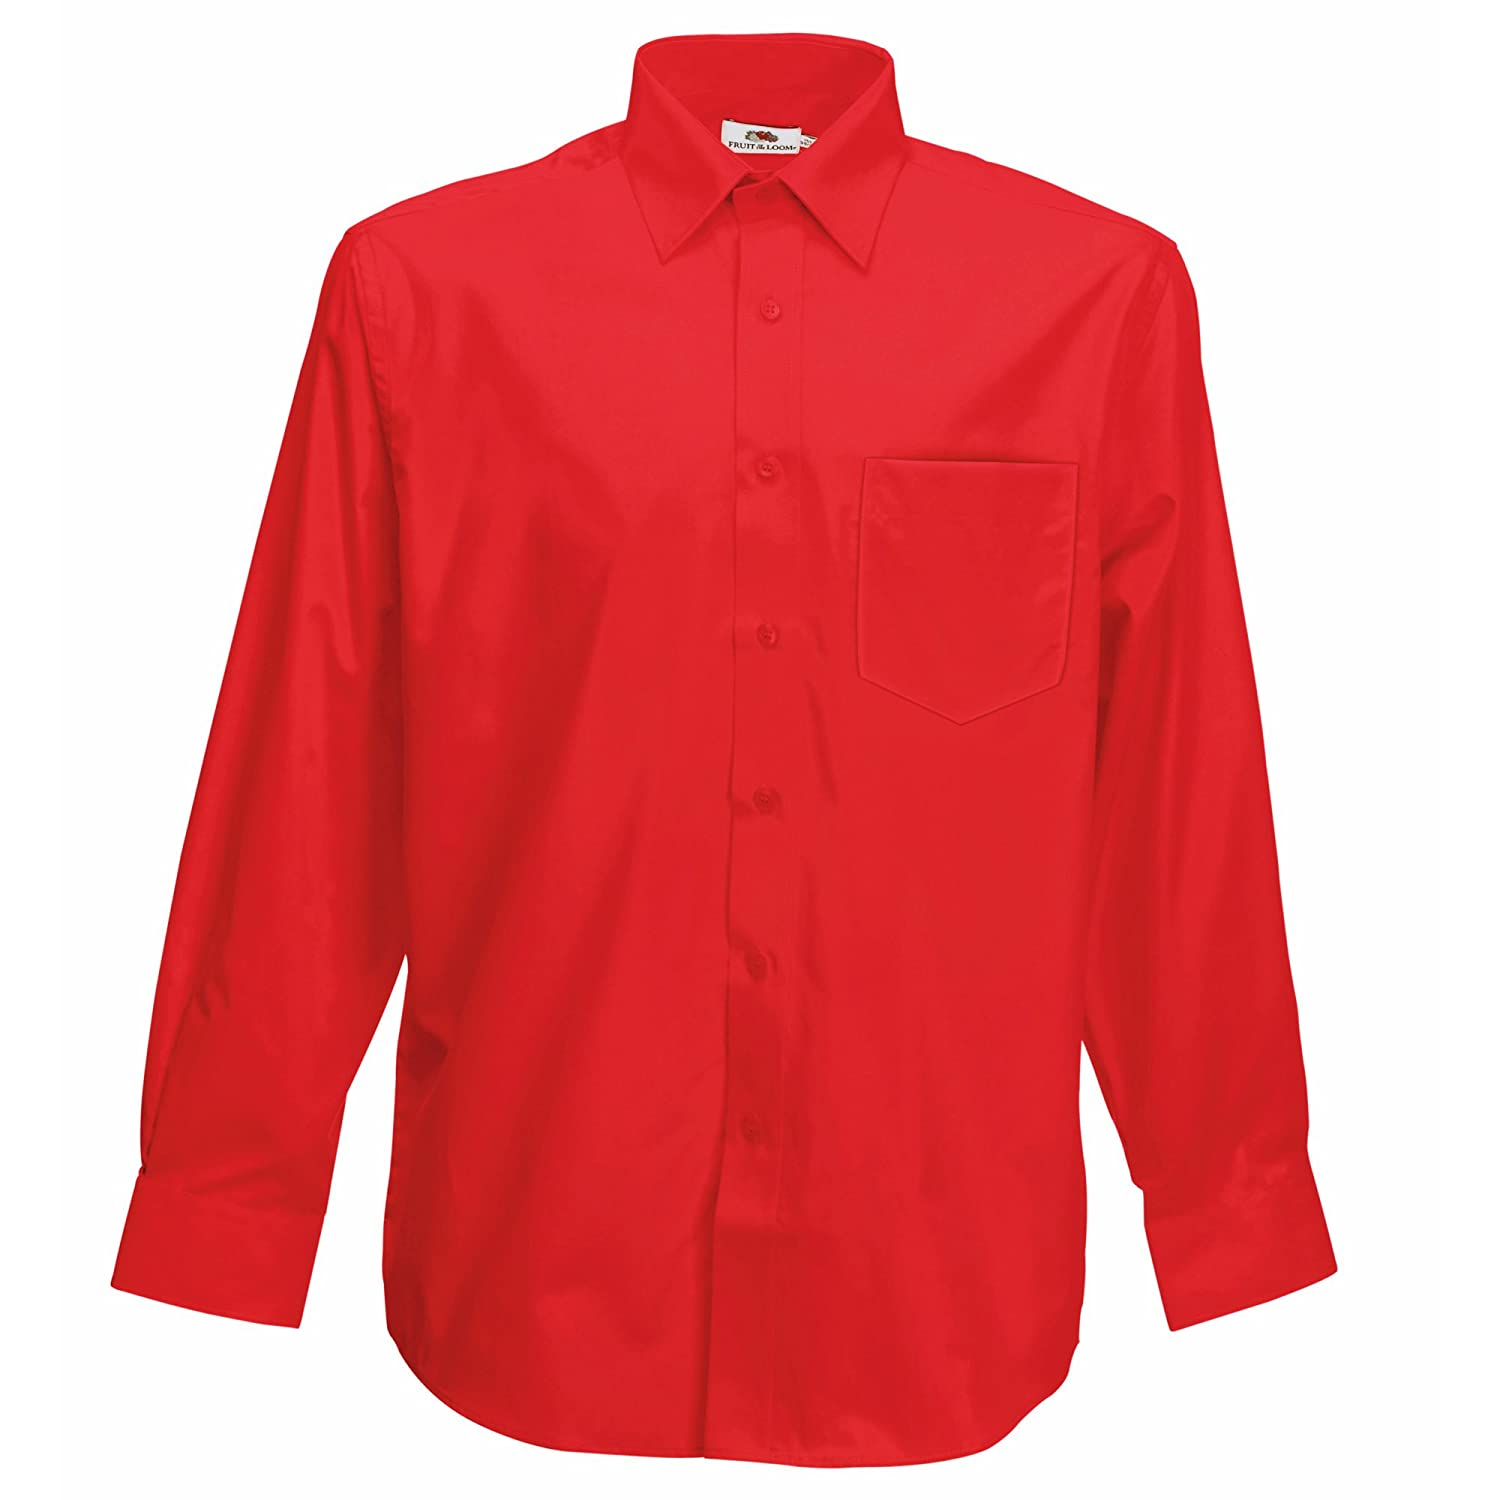 Fruit of the Loom Long Sleeve Poplin Shirt, Camicia Uomo 65-118-0